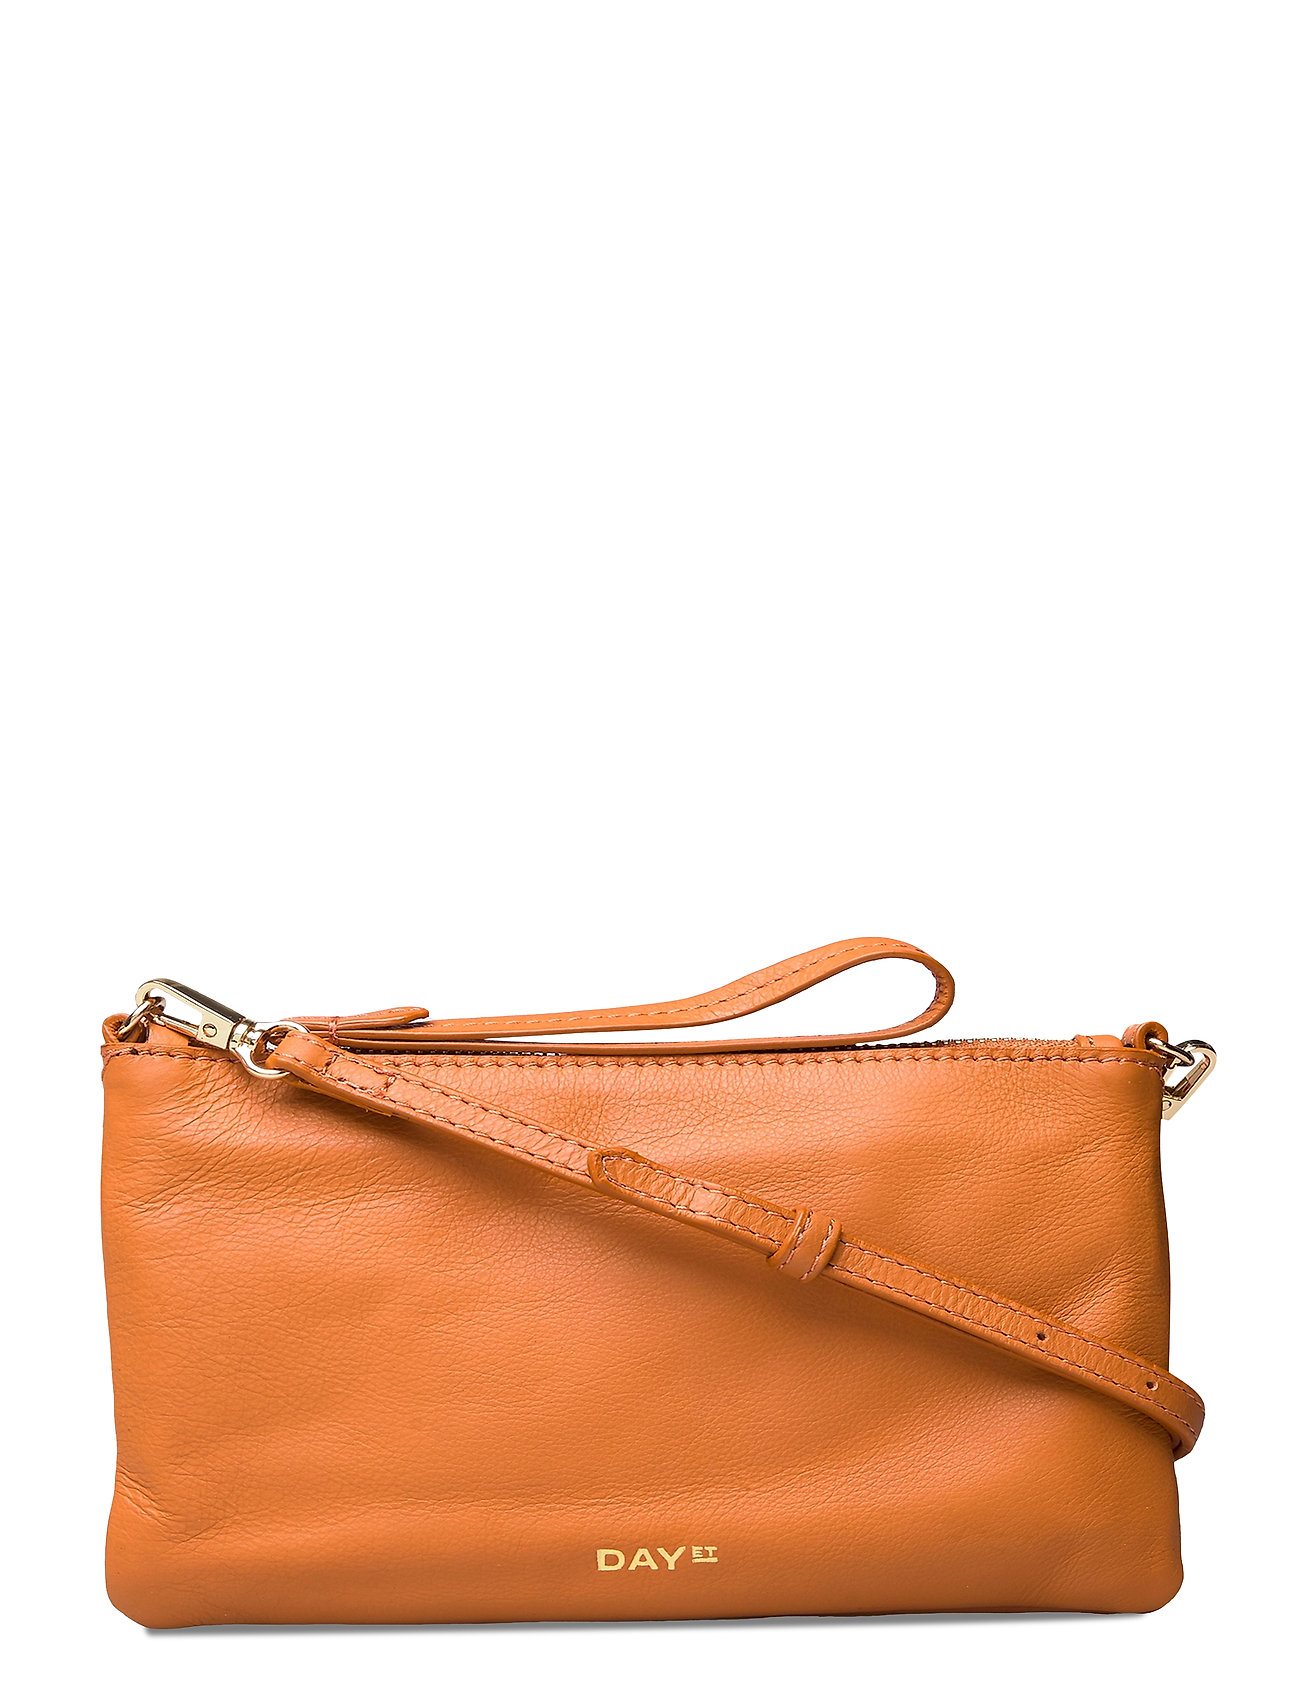 Image of Day Bern Cb Bags Small Shoulder Bags - Crossbody Bags Orange DAY Et (3446398089)